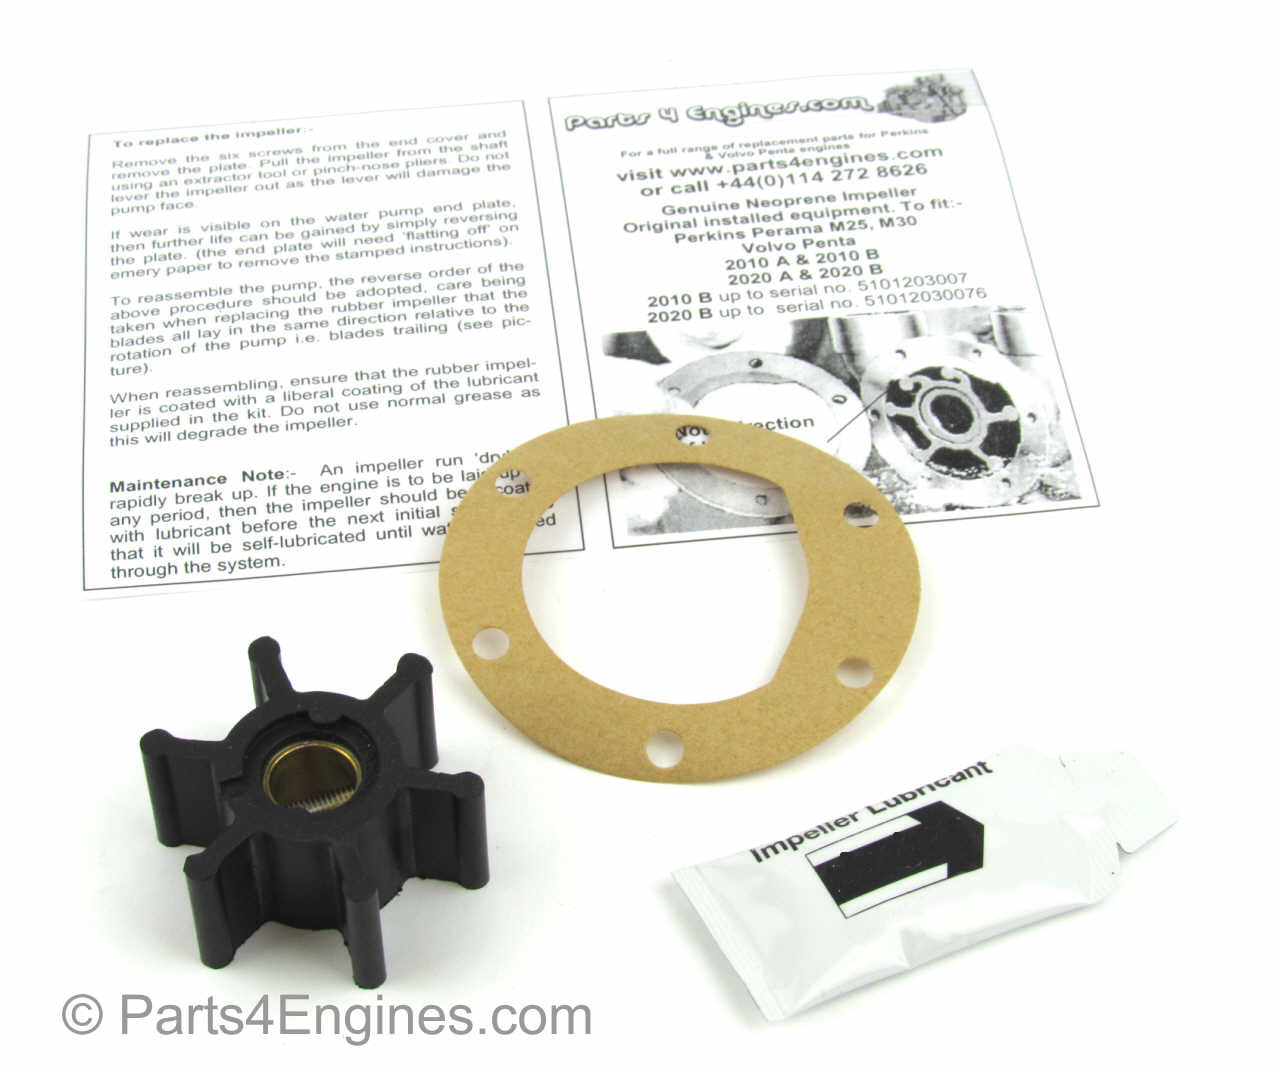 Volvo Penta MD2020 raw water pump early impeller kit from Parts4engines.com